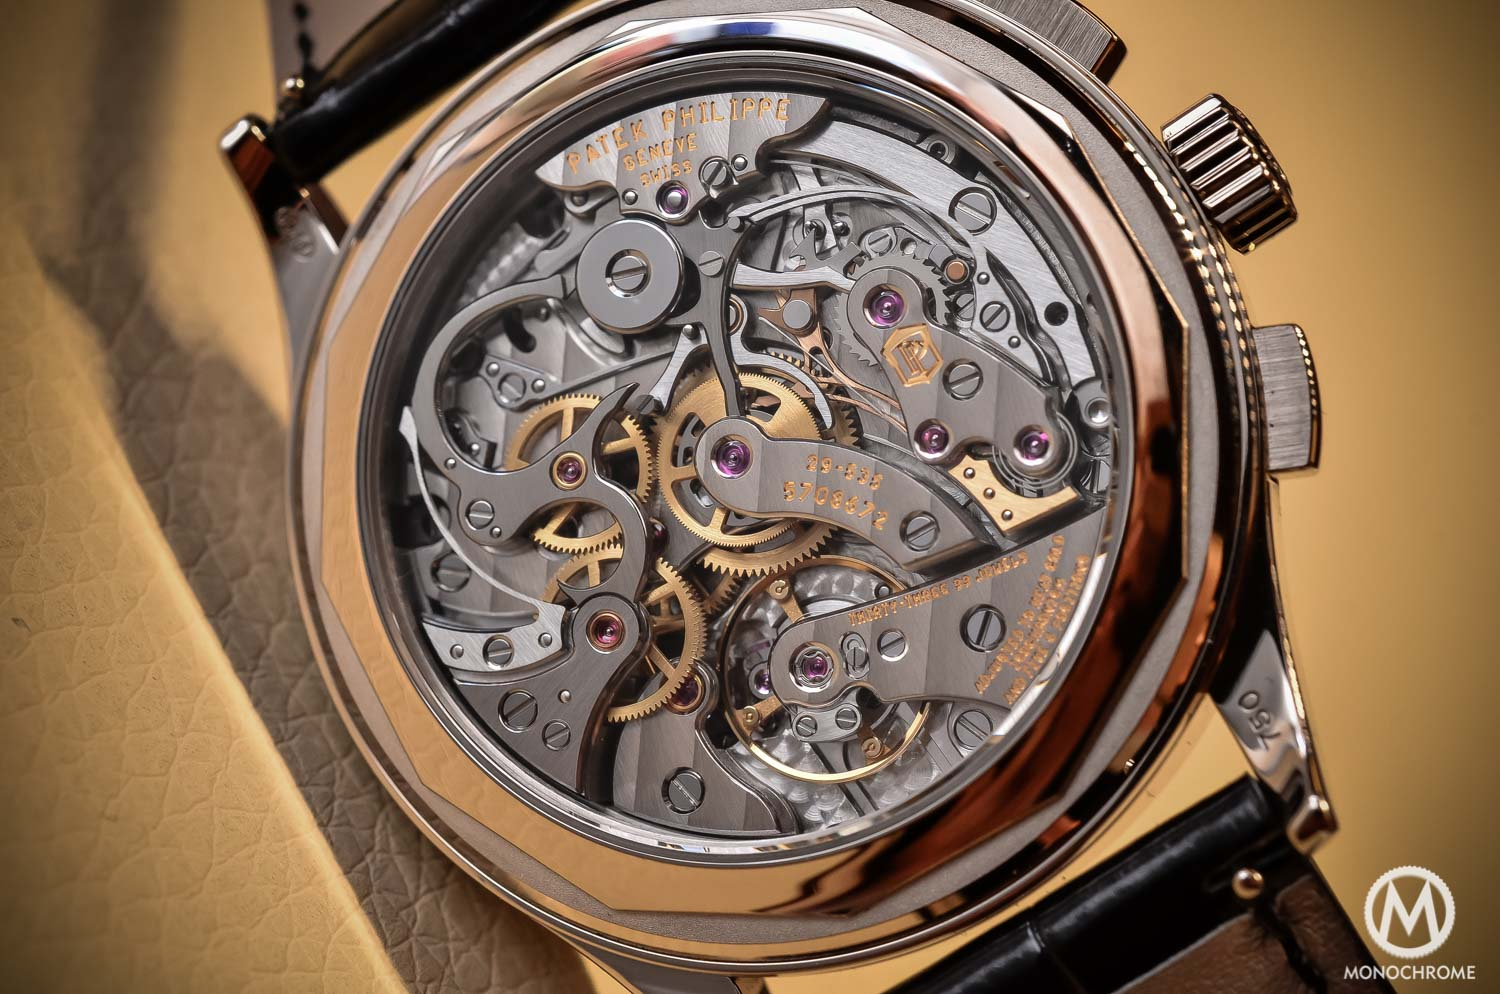 Patek Philippe 5170g-001 Chronograph - review - movement